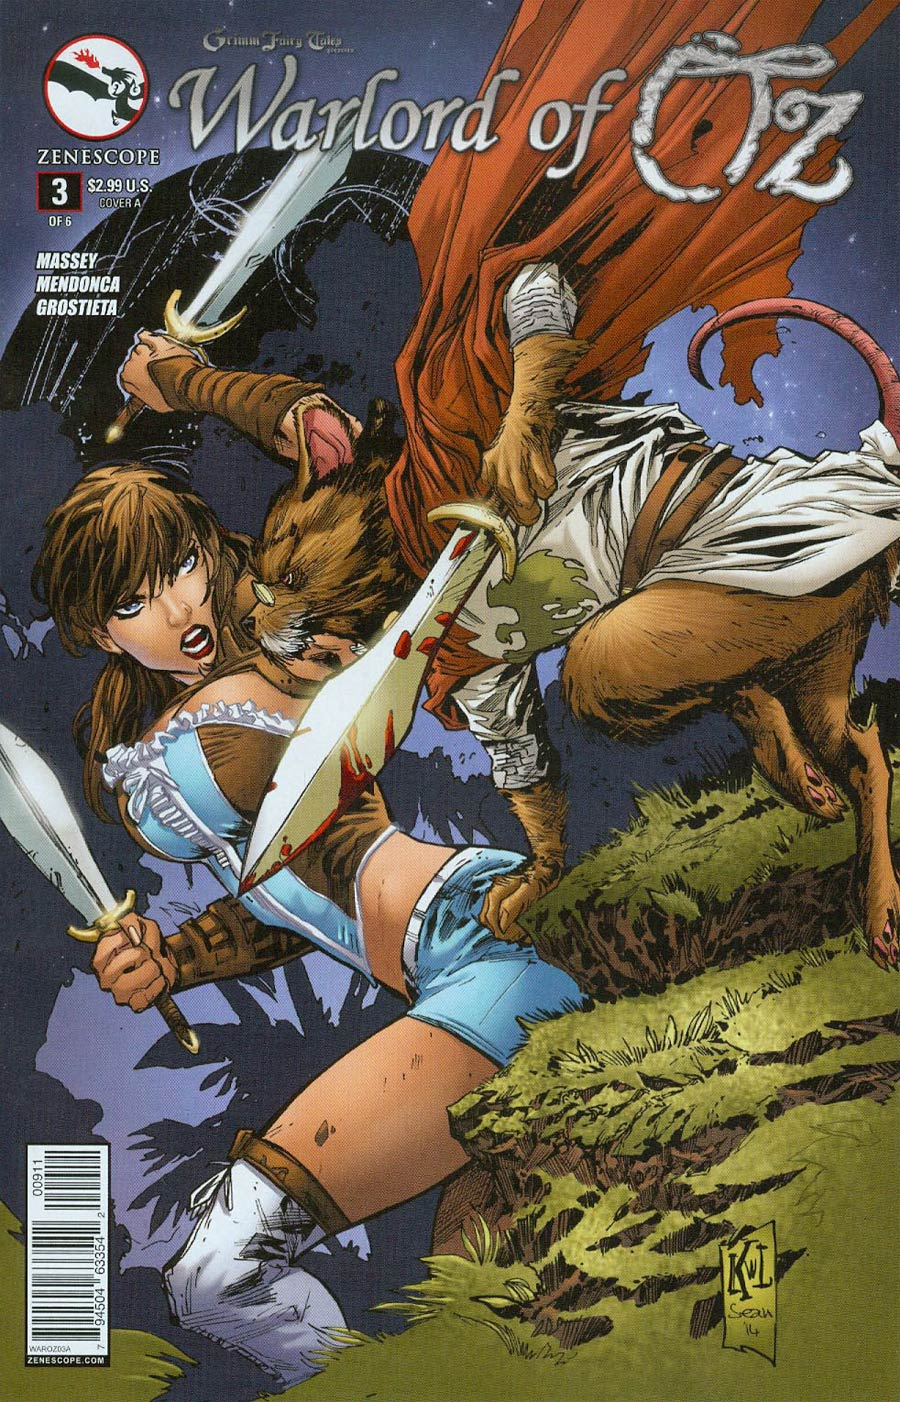 Grimm Fairy Tales Presents Warlord Of Oz #3 Cover A Ken Lashley